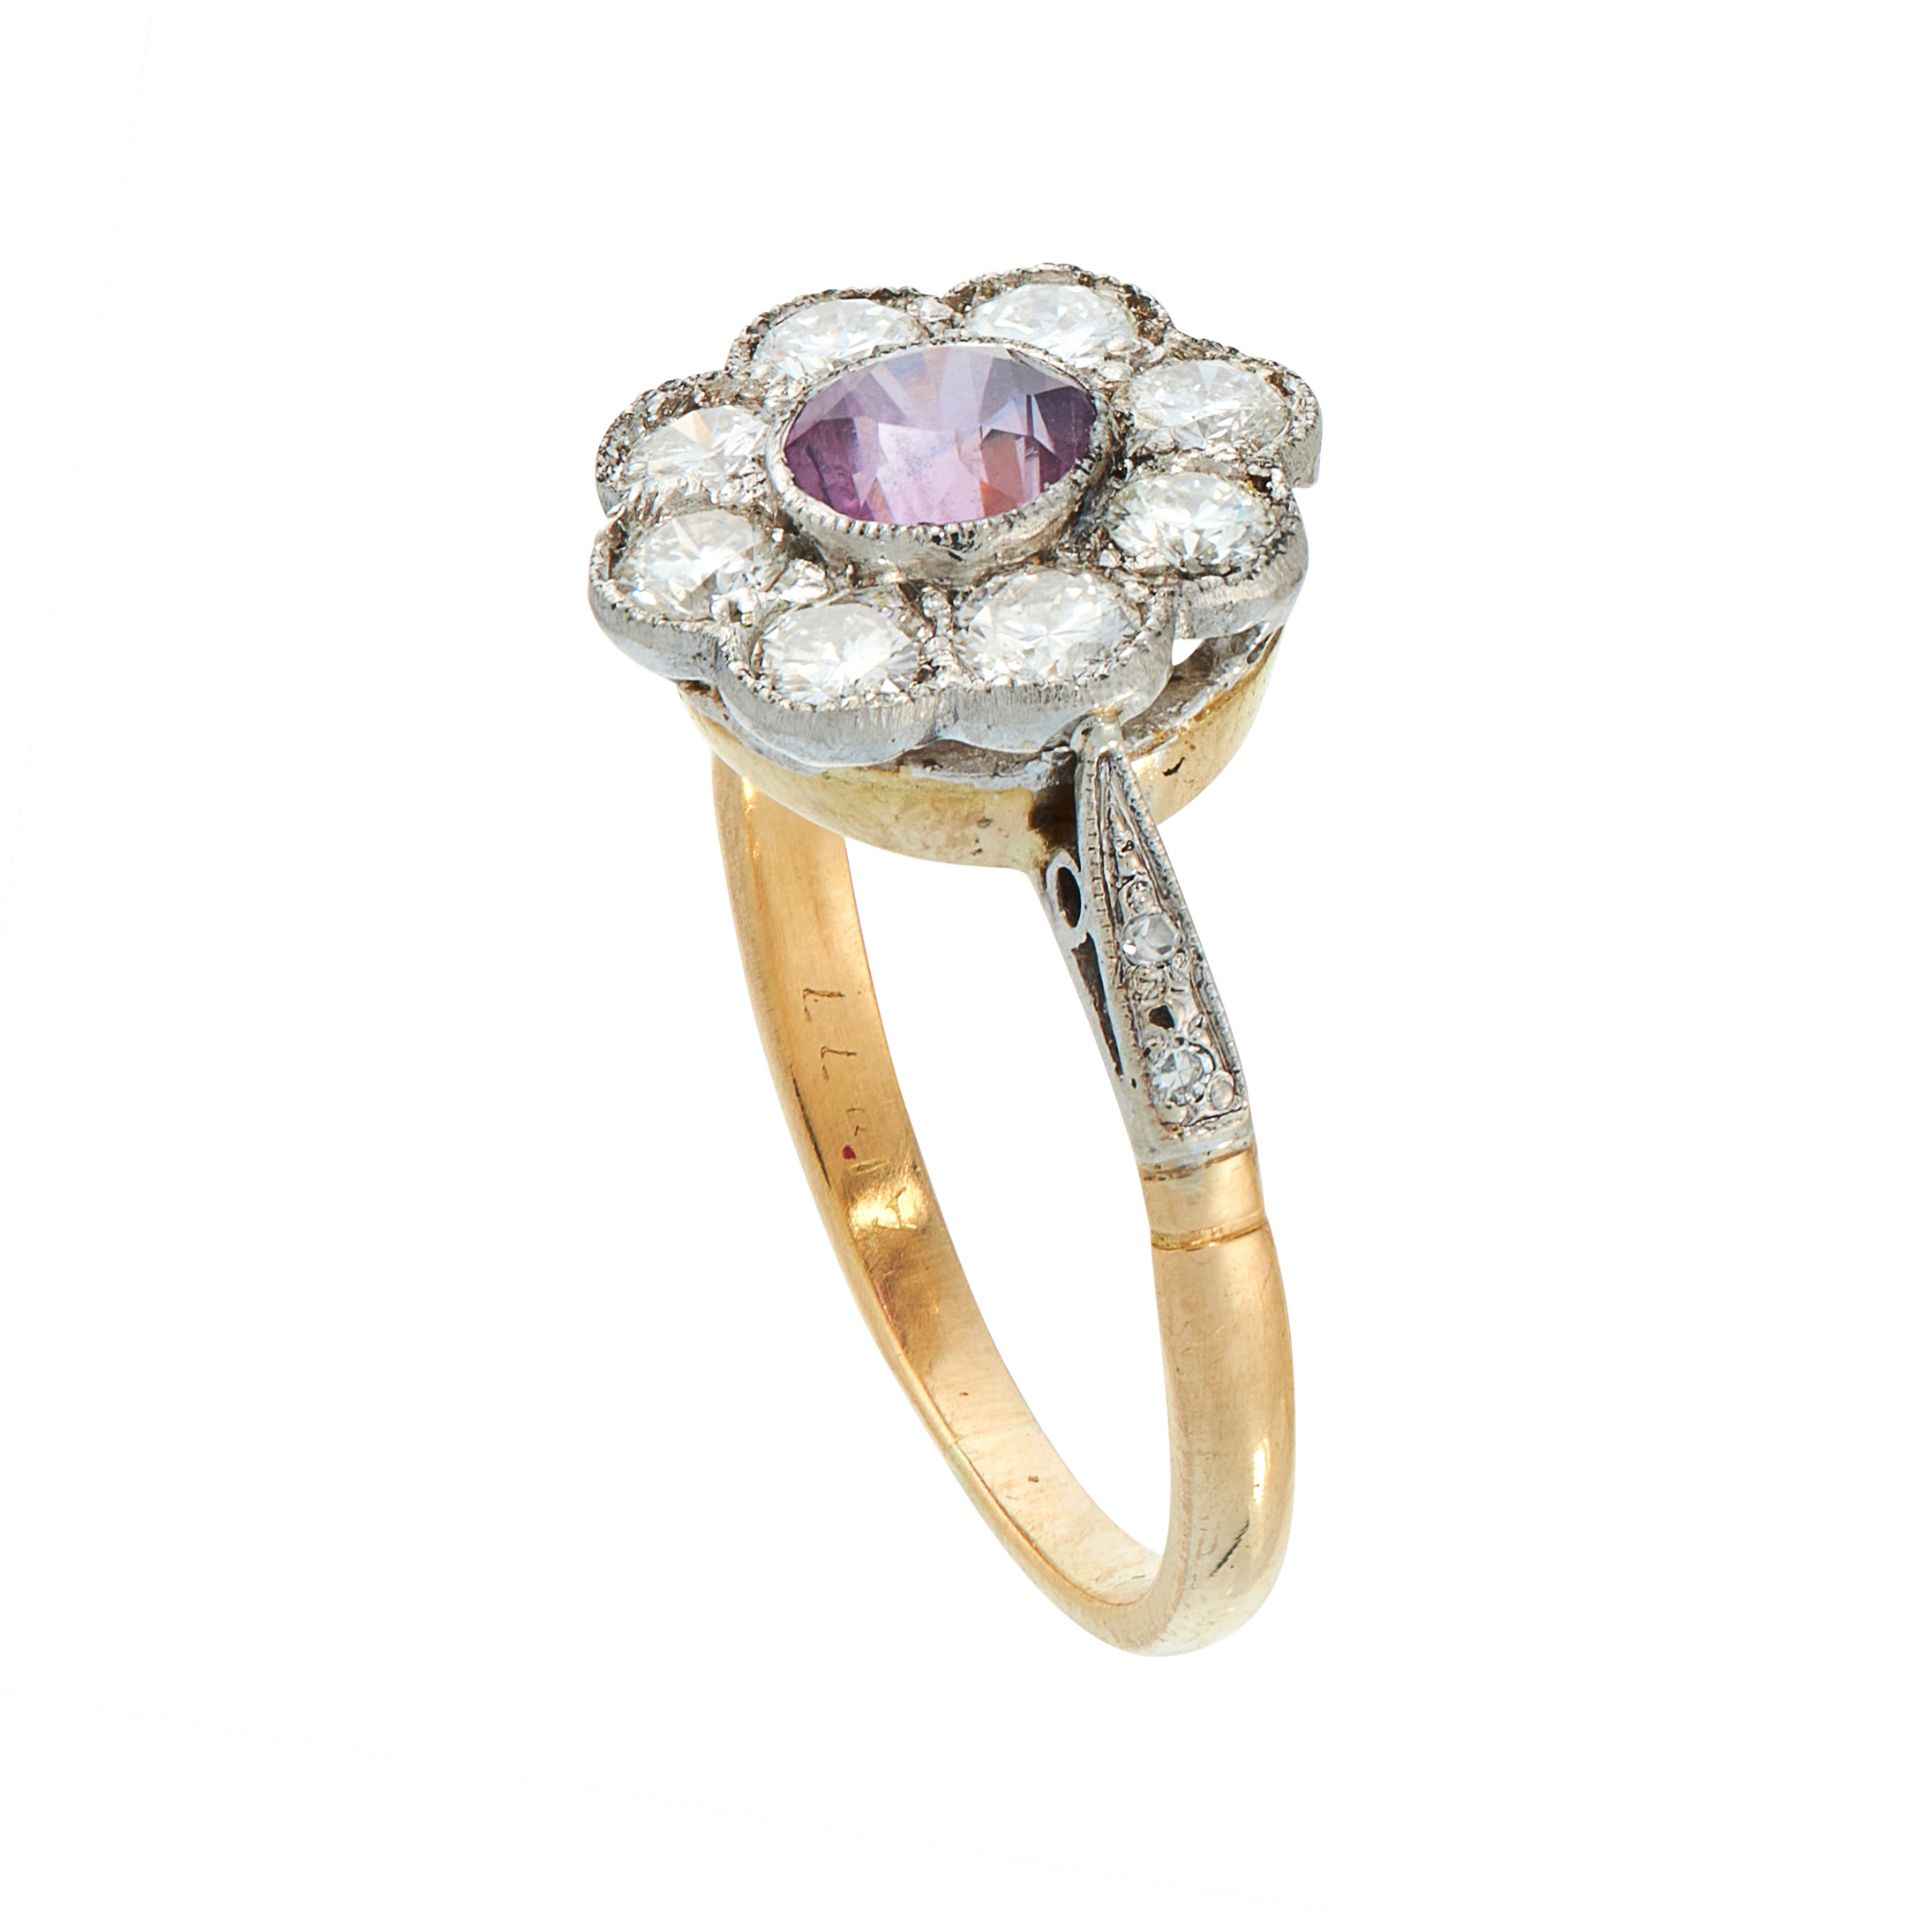 A PINK SAPPHIRE AND DIAMOND DRESS RING in 18ct yellow gold, set with a round cut pink sapphire of - Image 2 of 2